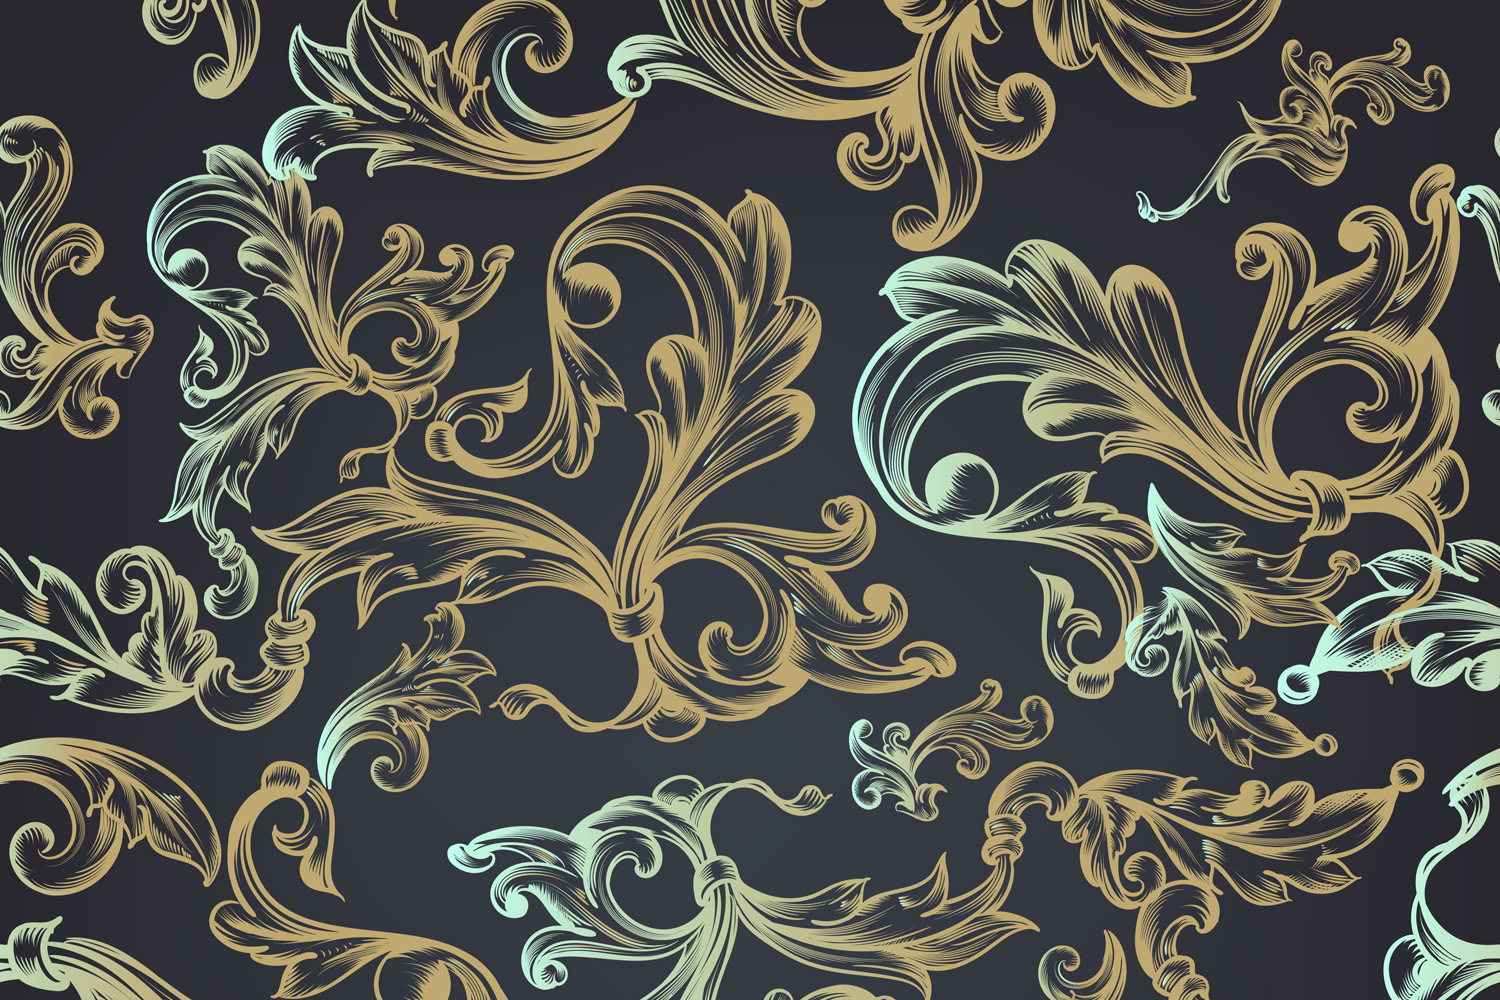 Download Free Floral Pattern With Swirls For Design Graphic By Fleurartmariia SVG Cut Files